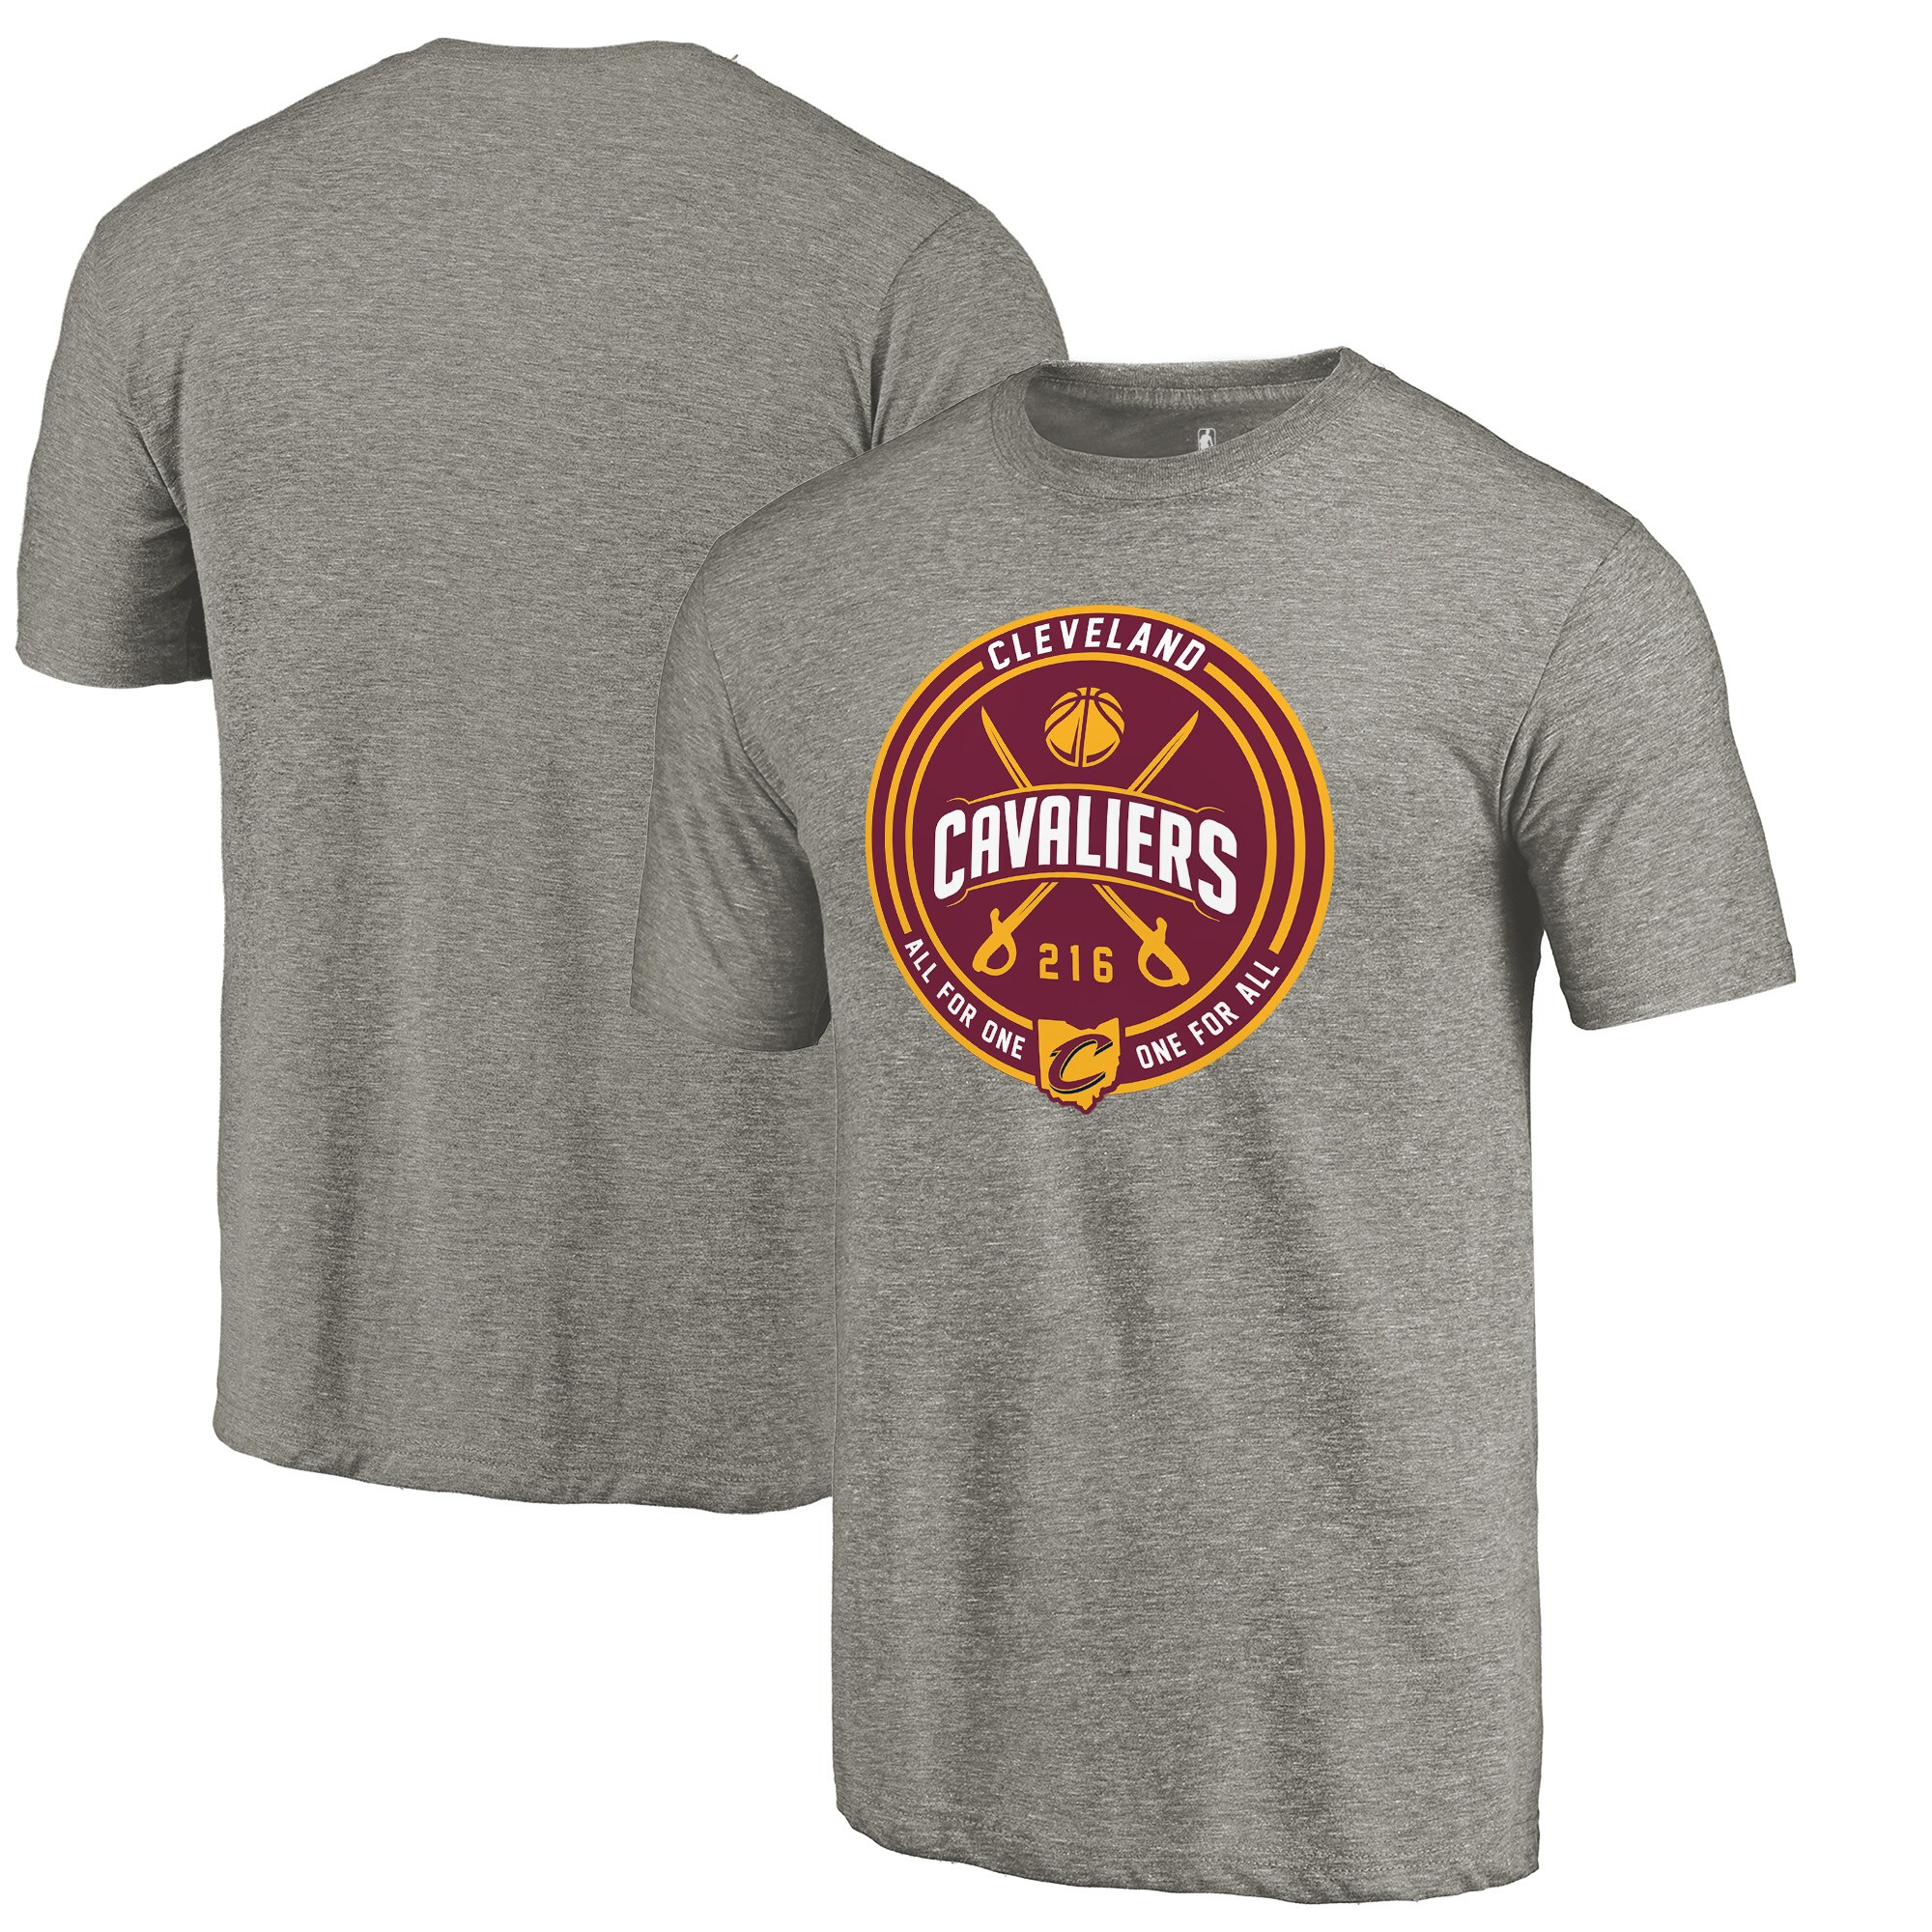 Cleveland Cavaliers Fanatics Branded One for All Hometown Collection Tri-Blend T-Shirt - Gray